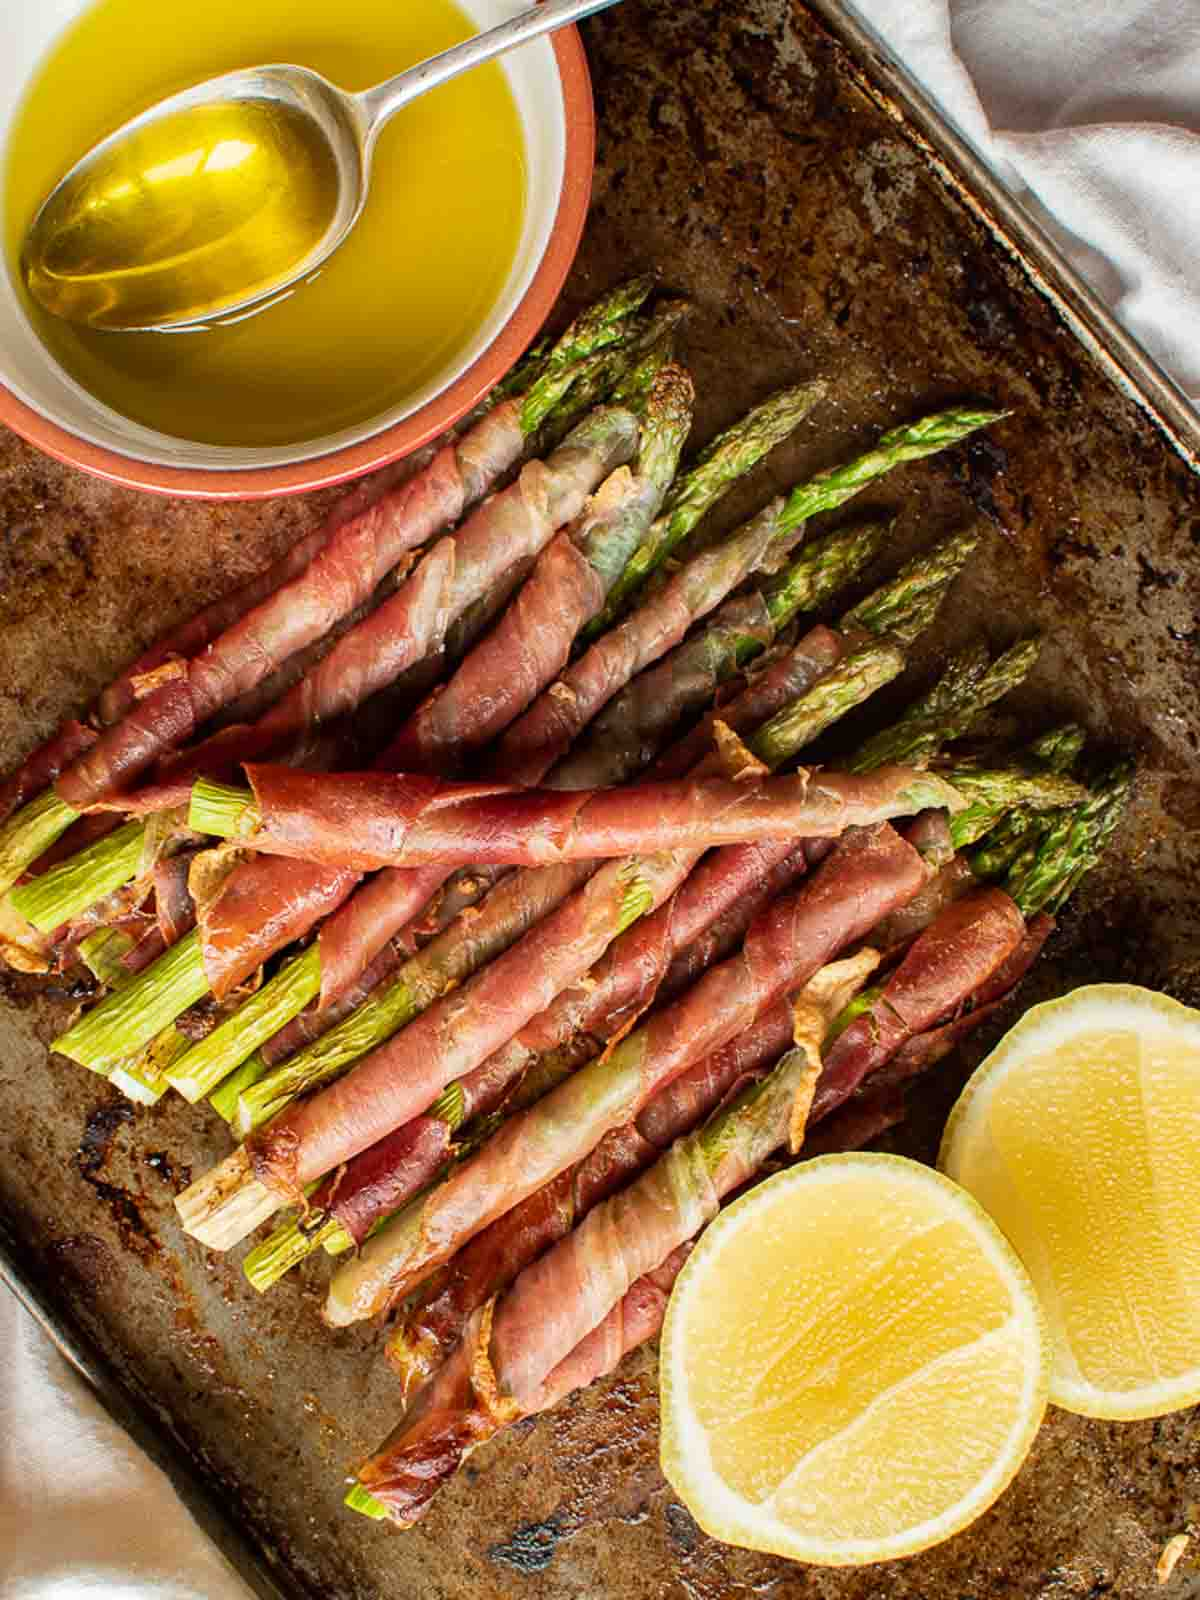 Prosciutto wrapped asparagus with lemon cheeks and olive oil in a red and white dish viewed from above.